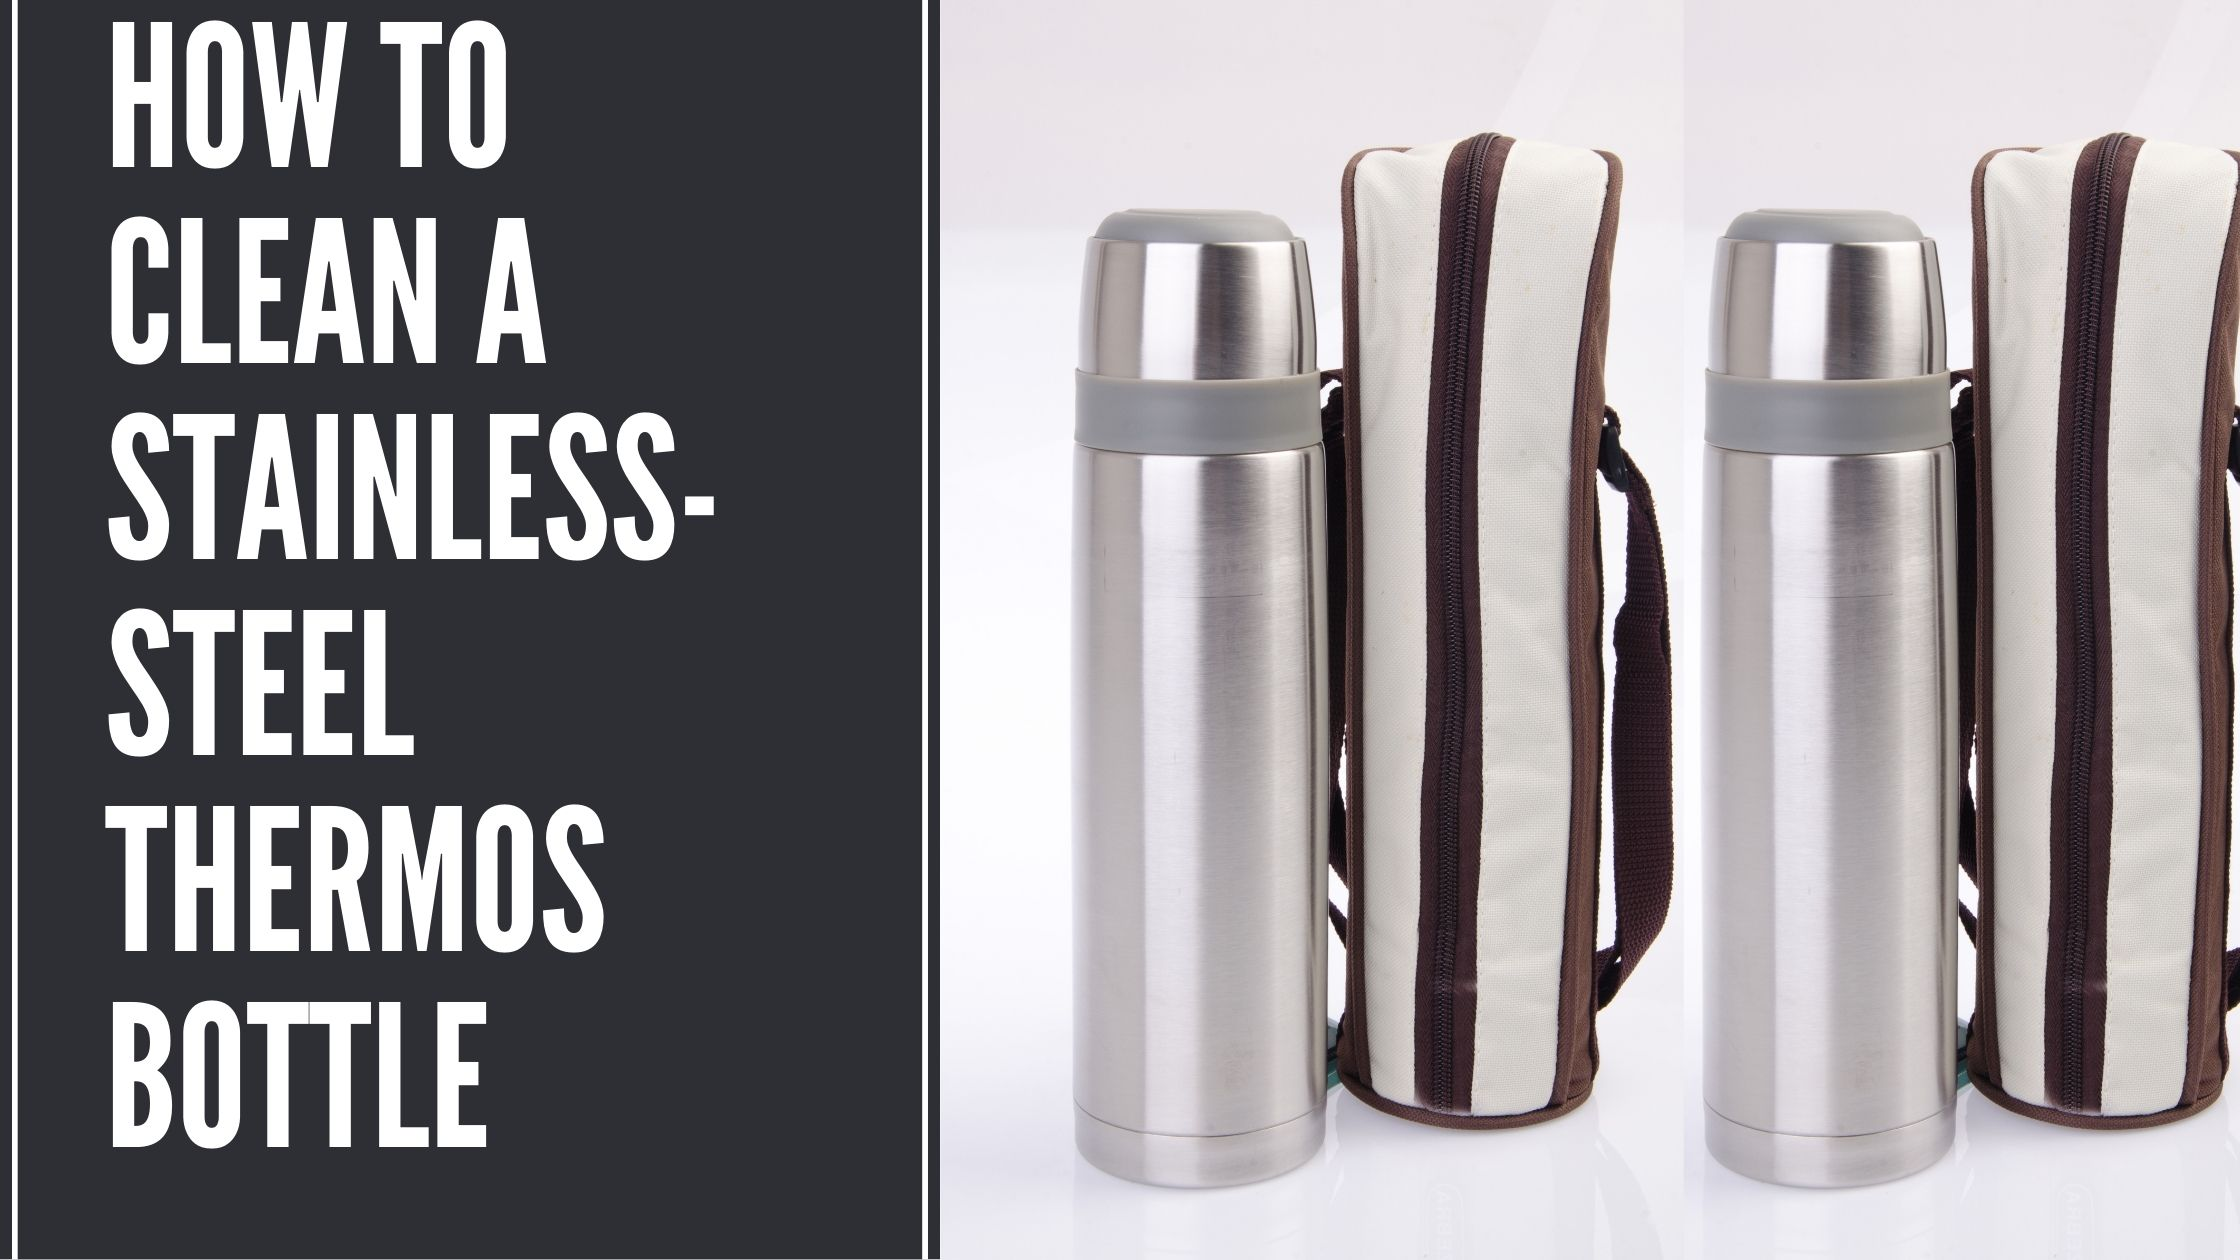 How to Clean a Stainless-Steel Thermos Bottle